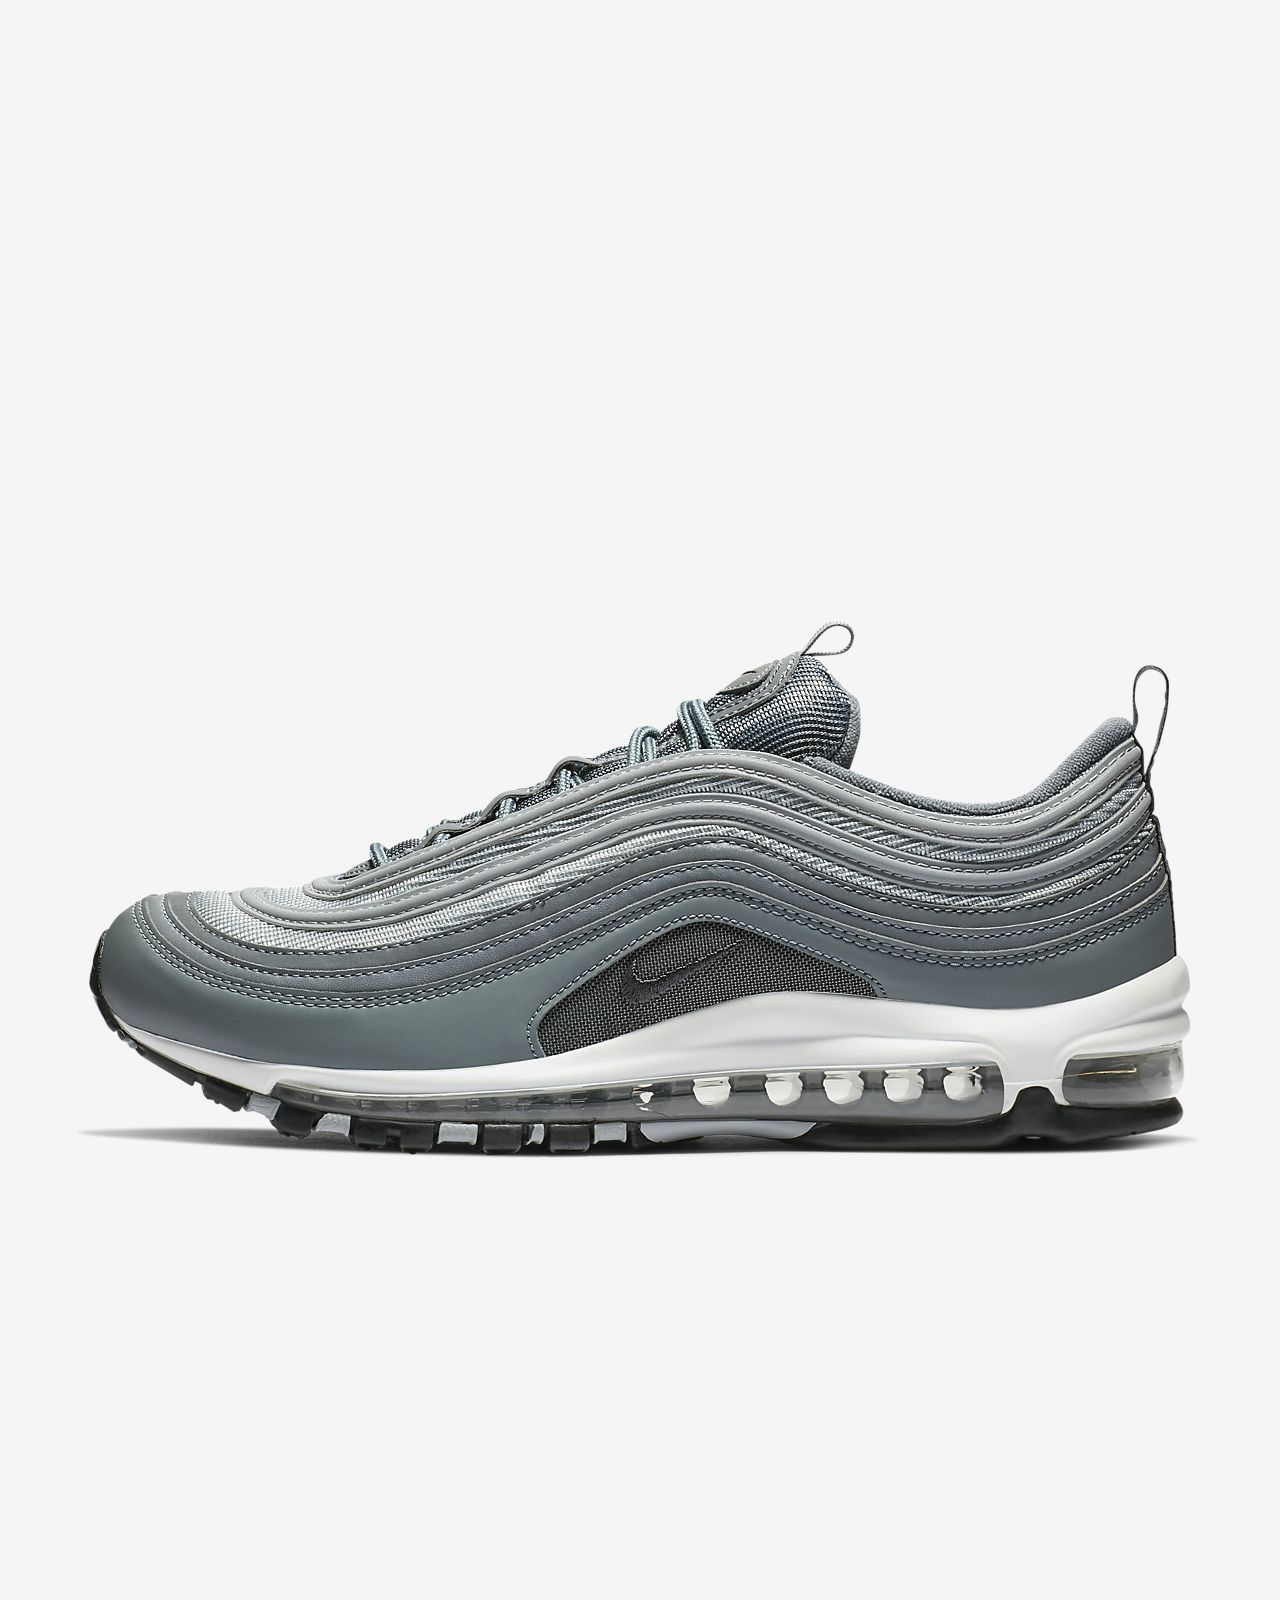 cheaper d72f6 cfff8 ... Chaussure Nike Air Max 97 Essential pour Homme